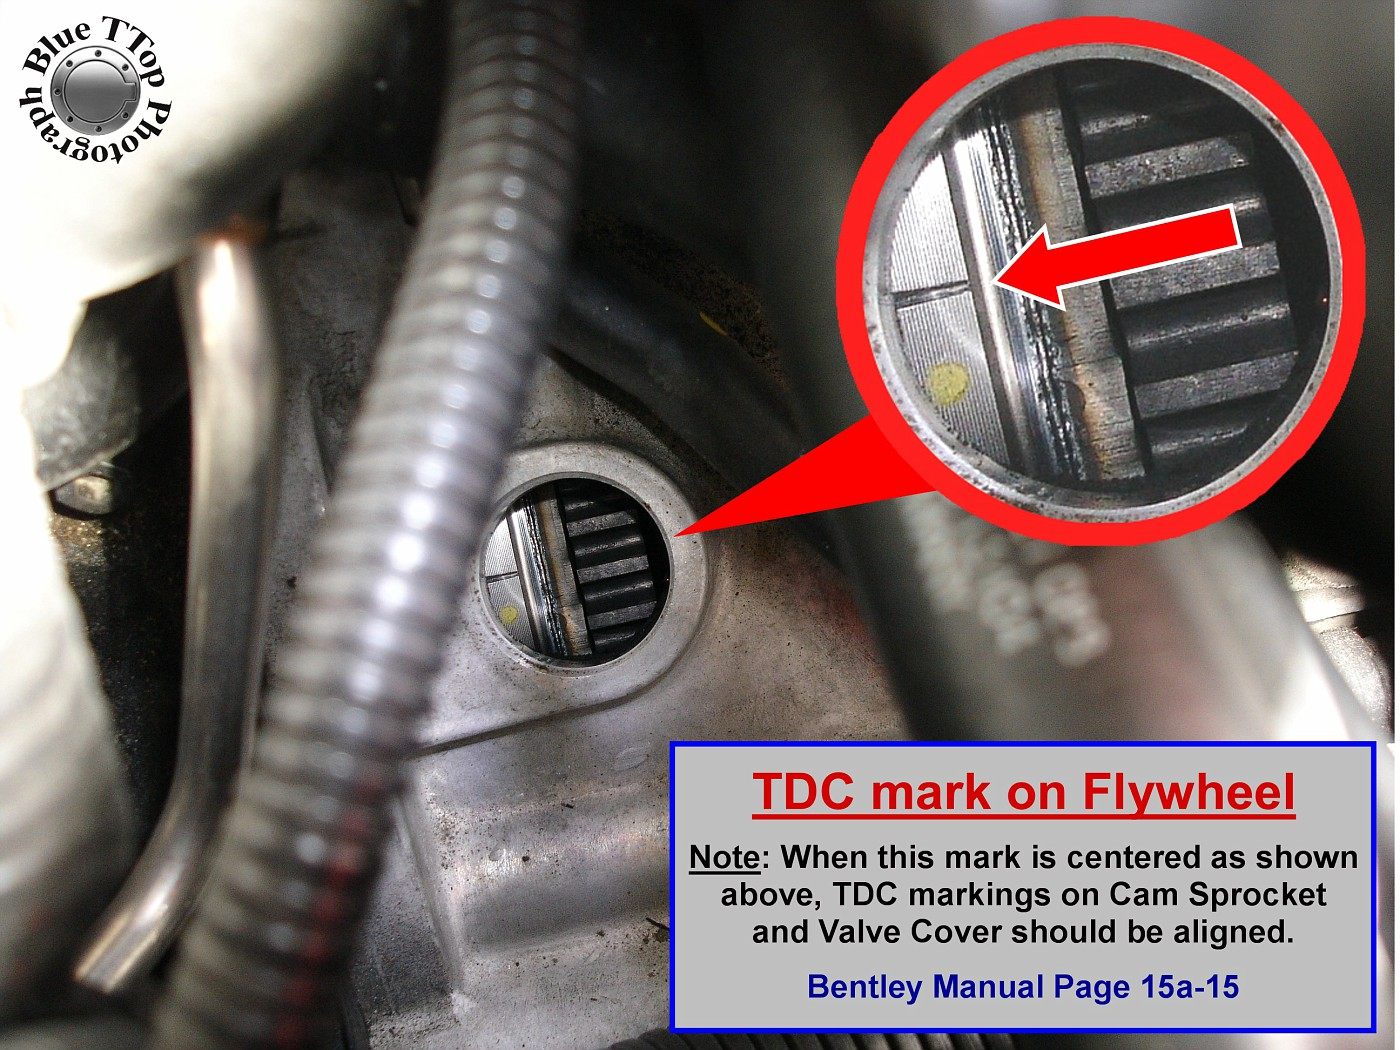 2002 Vw Jetta Tdi Coolant Hose Diagram Wiring Diagrams 1 8l Engine Images On A 2001 8 Turbo Free Cooling System 2013